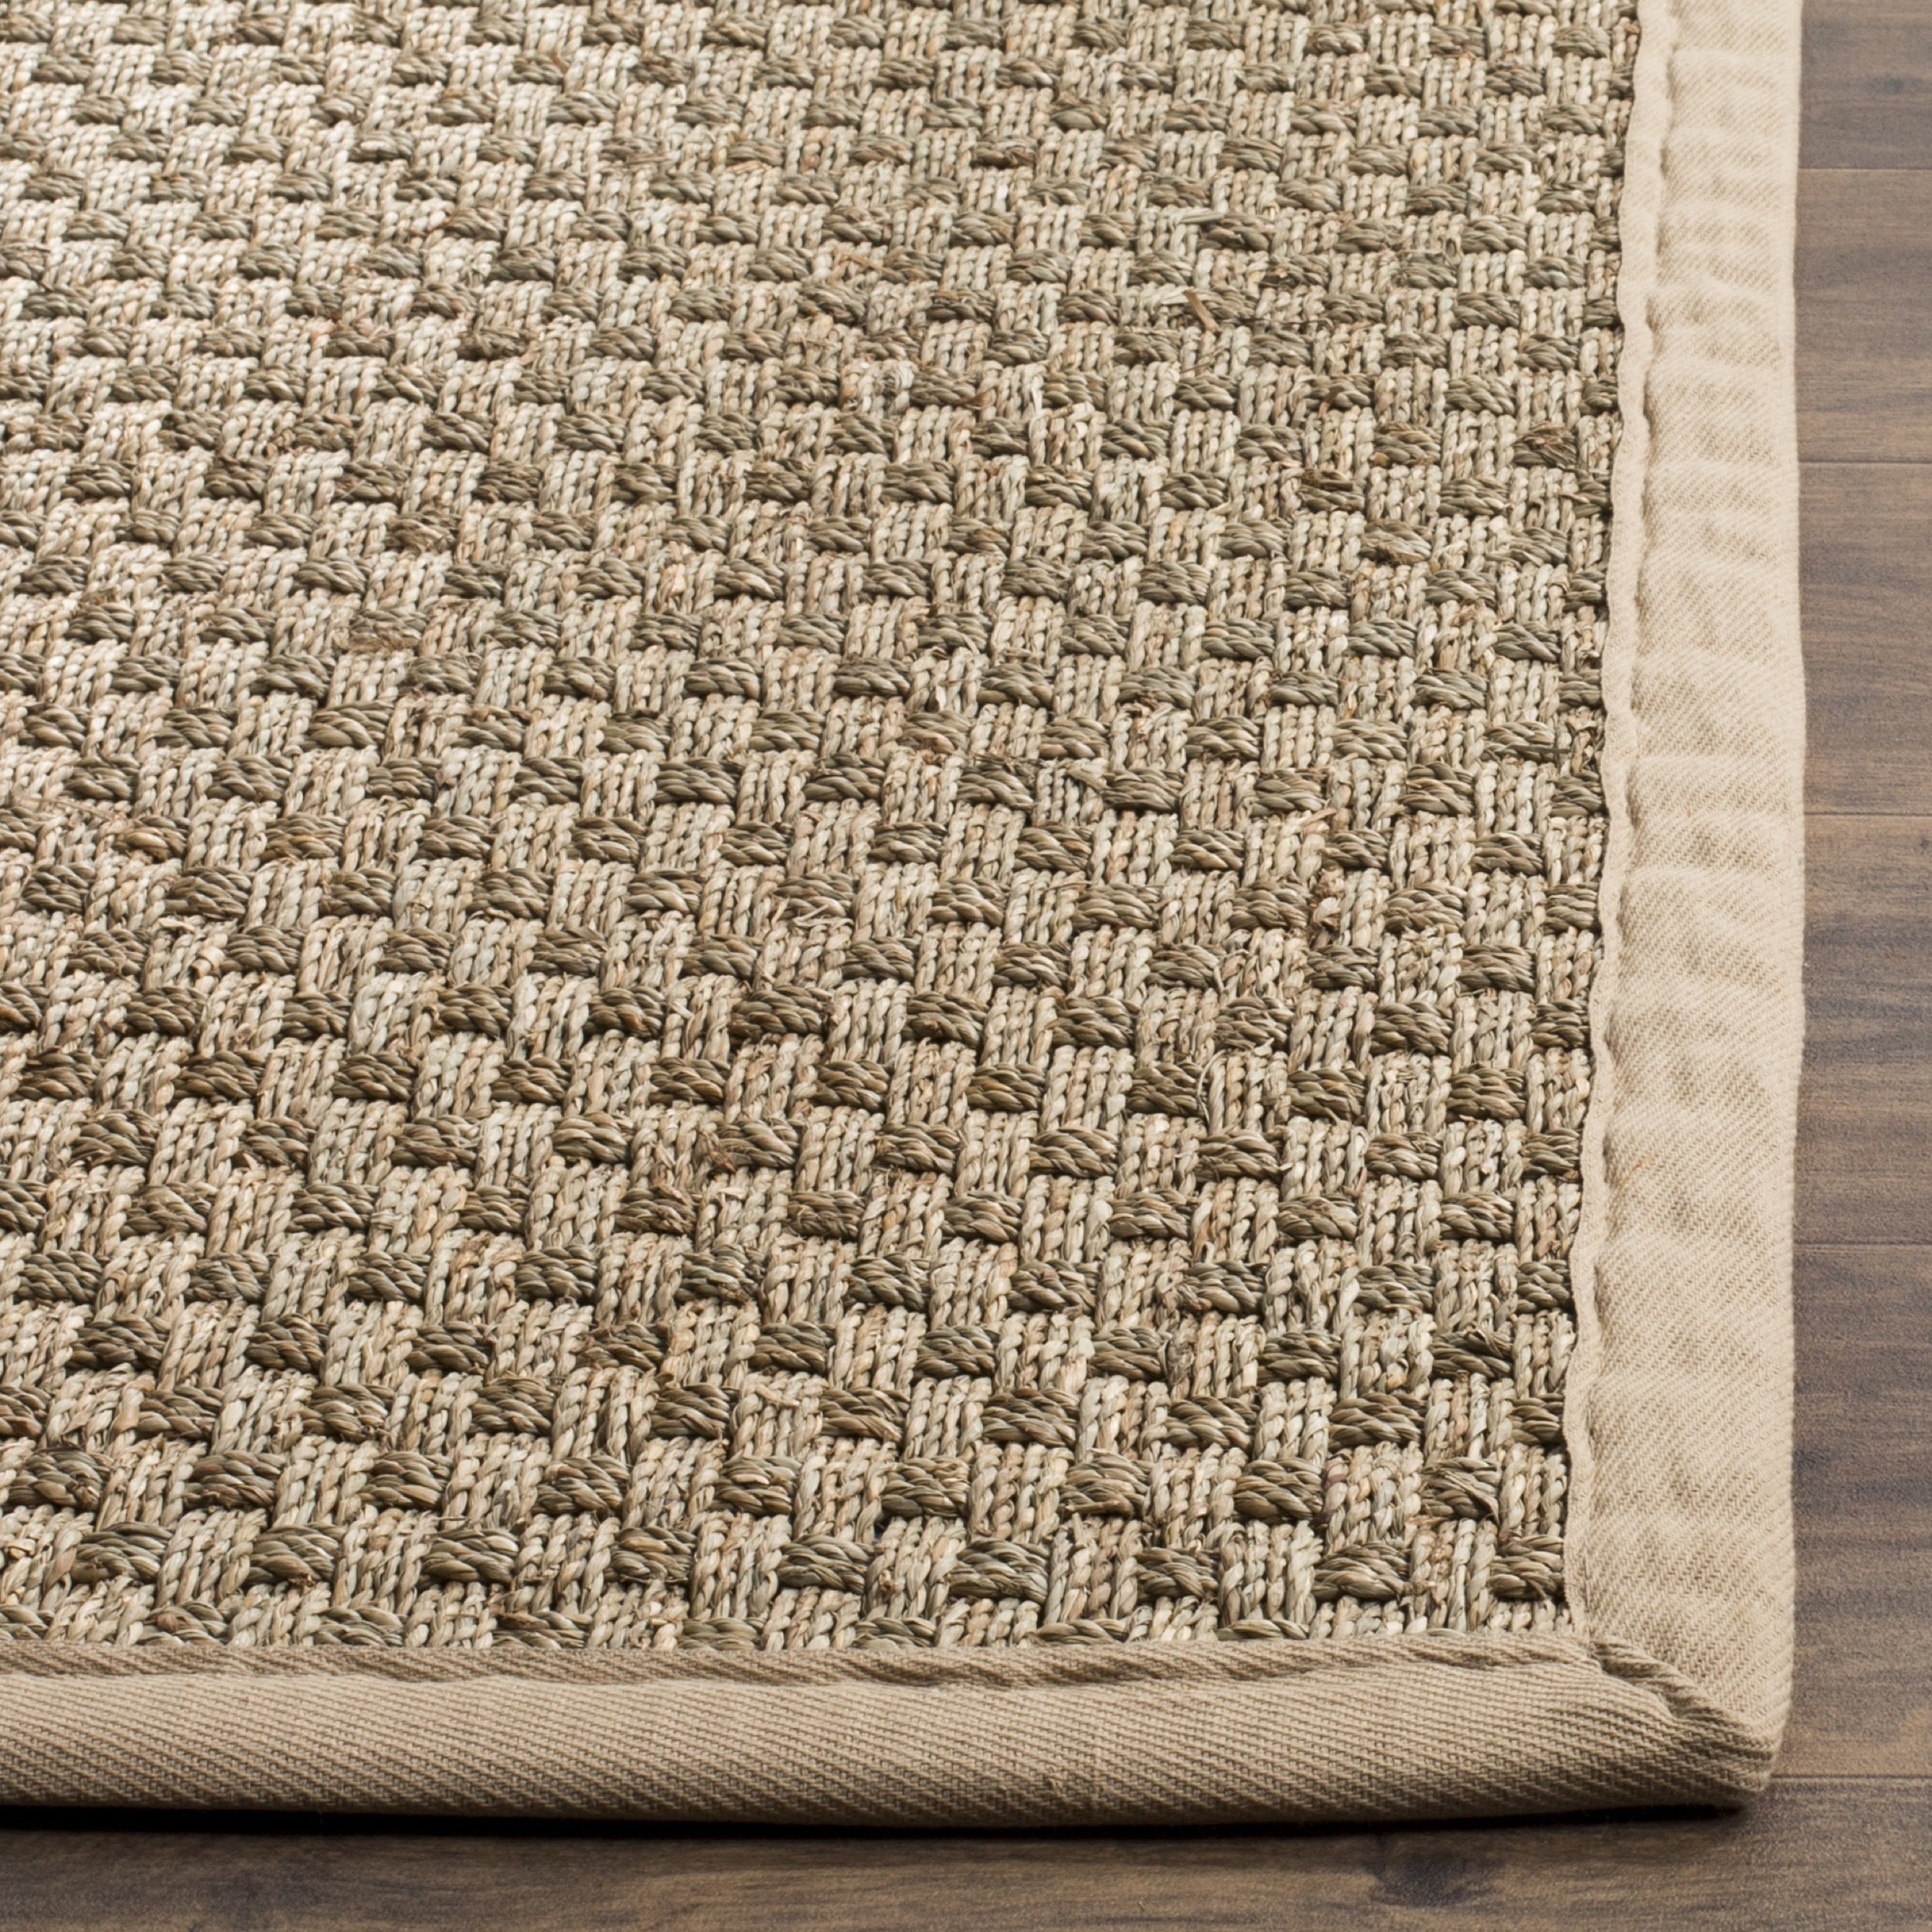 Safavieh Casual Natural Fiber And Beige Border Seagr Rug 4 X 6 On Free Shipping Today Com 4256747